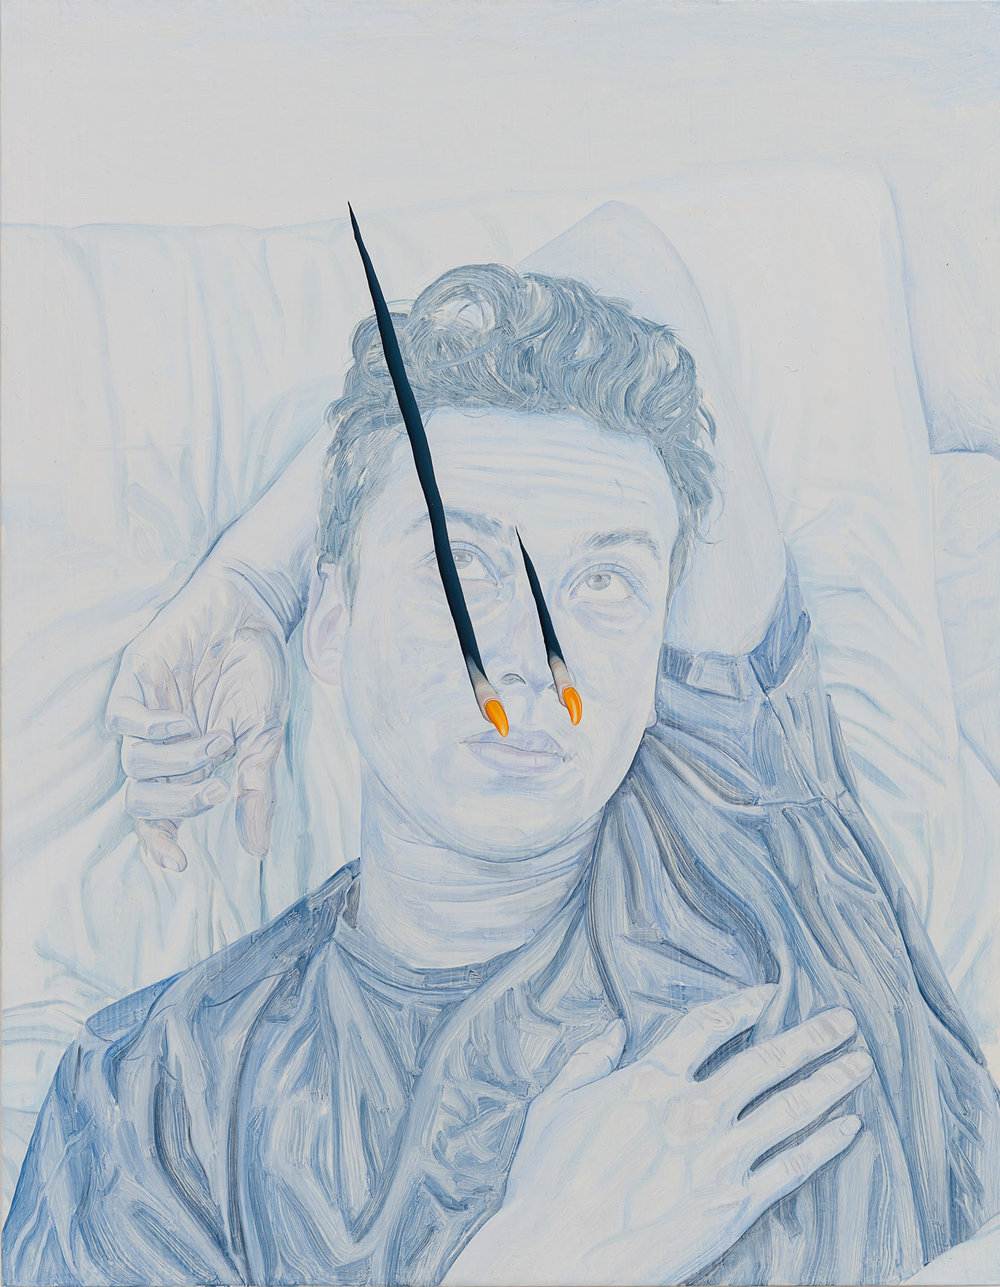 Tristan Pigott   Flimsy Film, Pierced Image - A Portrait Painting of My Friend Alex as a Retinal Stain Being Pierced by Two Fingers or Claws , 2018  Oil on board  36 x 28 cm